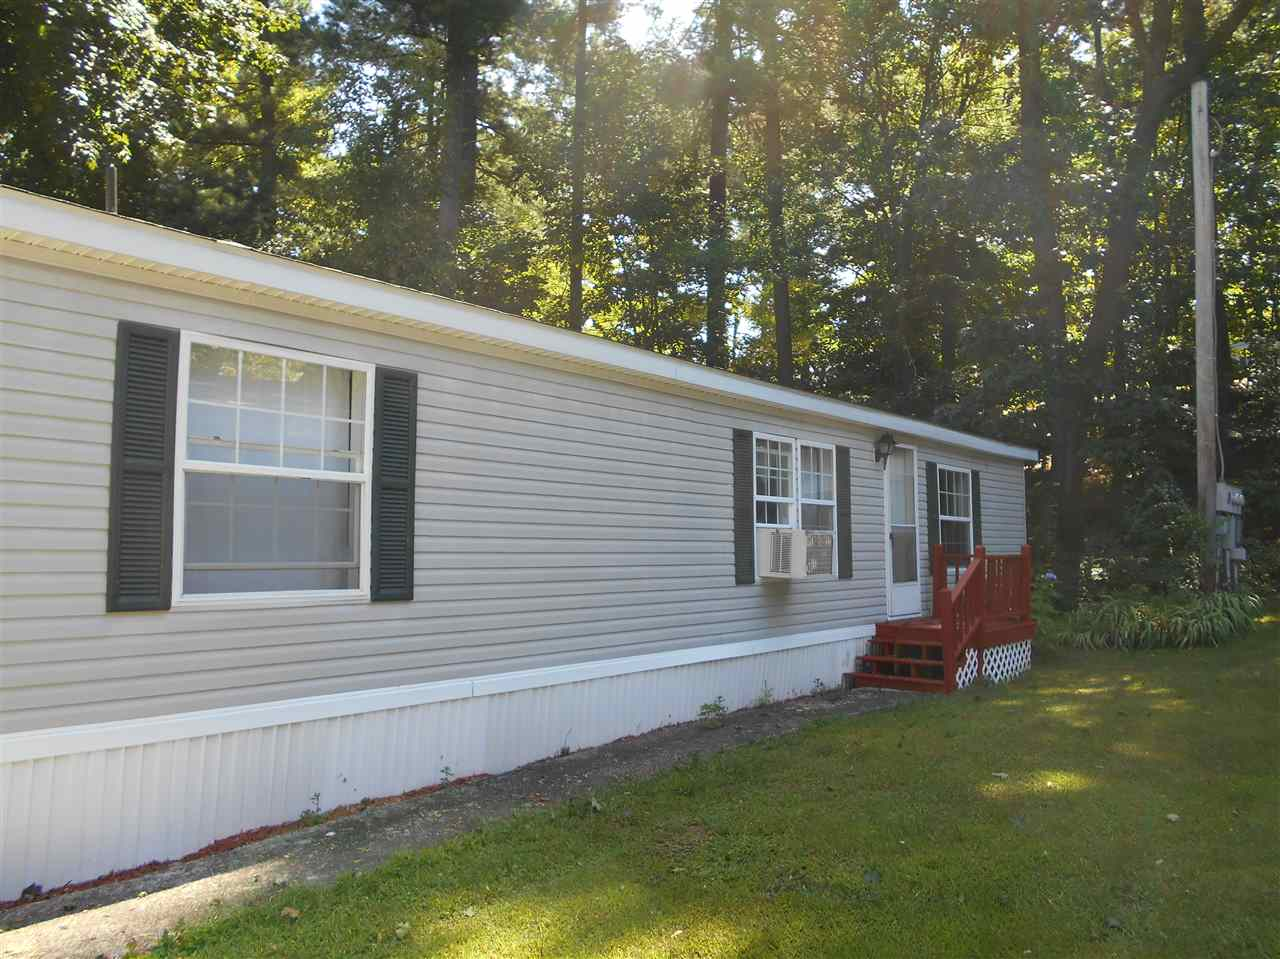 MLS 4768305: 2 Emerald Drive, Merrimack NH